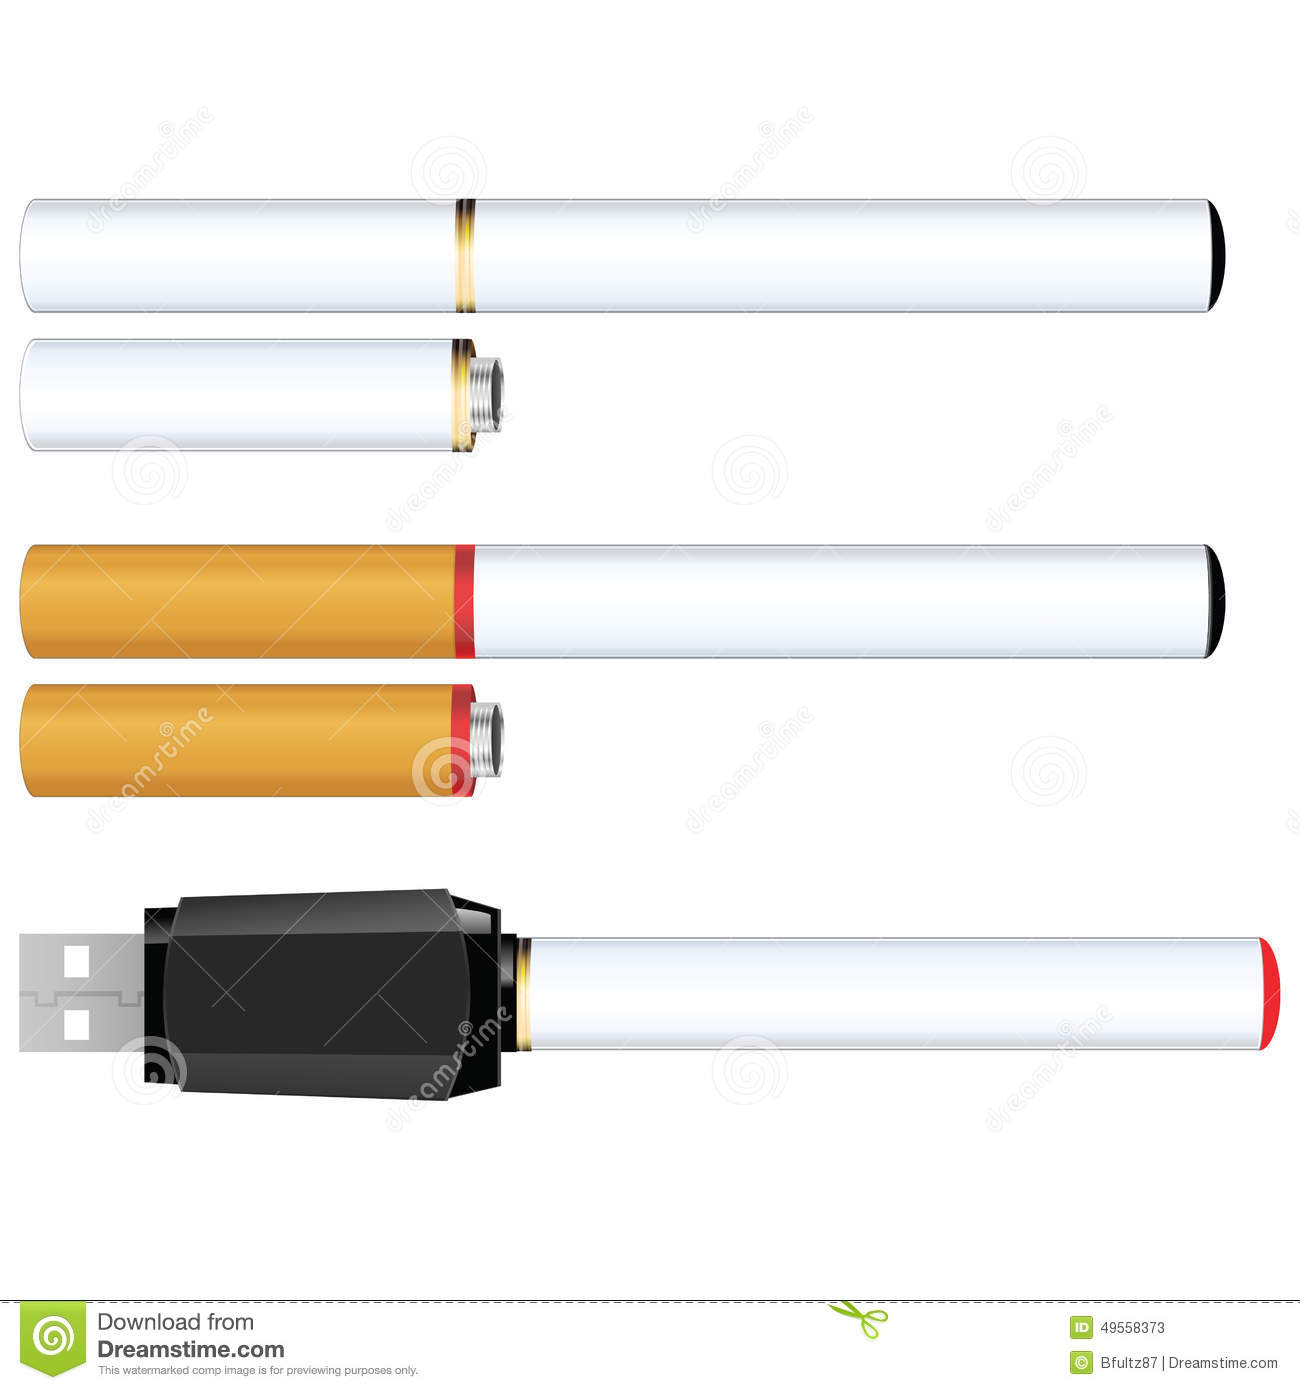 The Electronic Cigarette Co